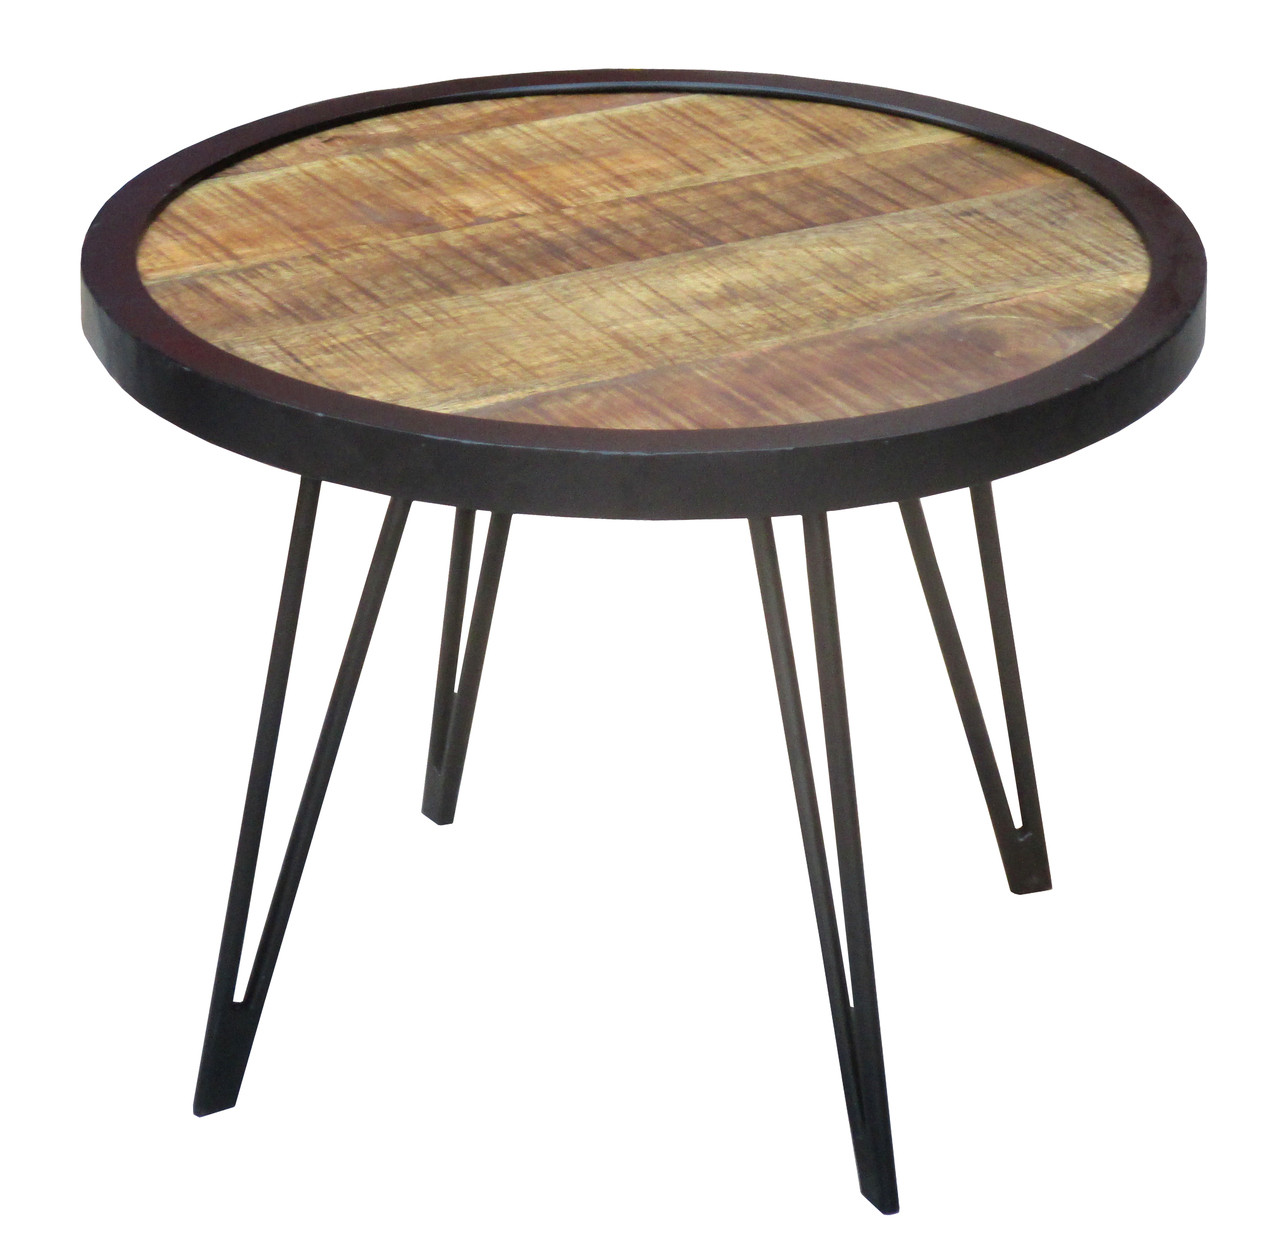 Reclaimed Wood Industrial Round Coffee Table: Reclaimed Wood Round Coffee Table